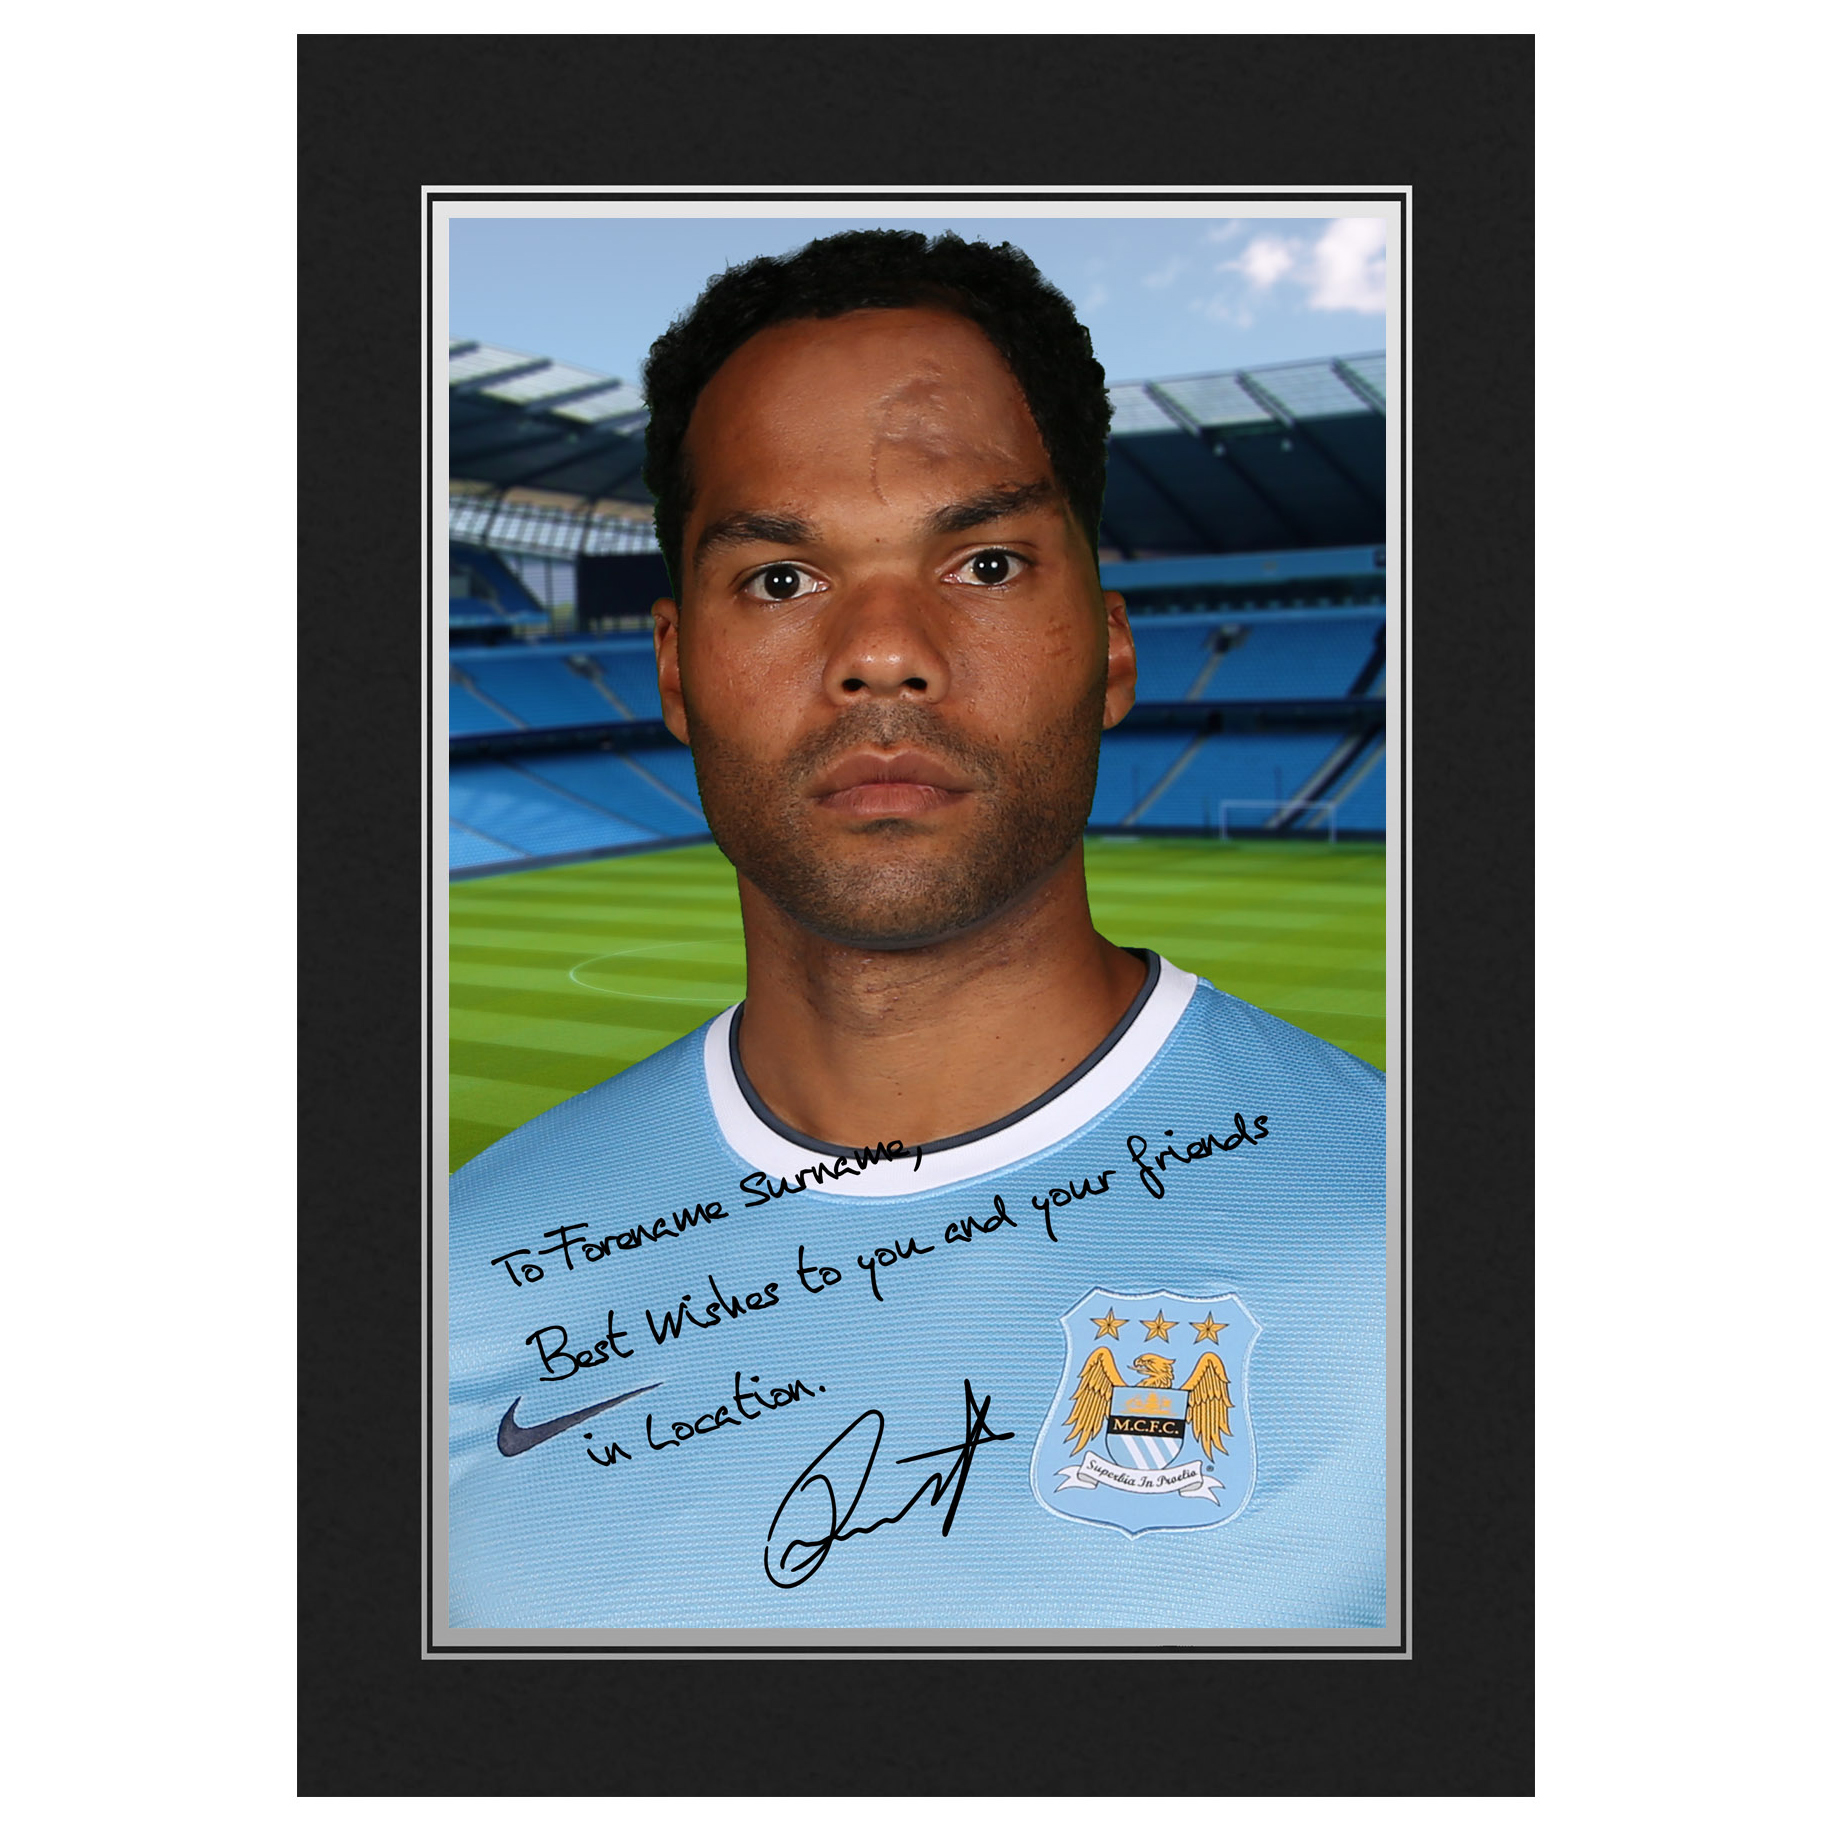 Manchester City Personalised Signature Photo in Presentation Folder - Joleon Lescott